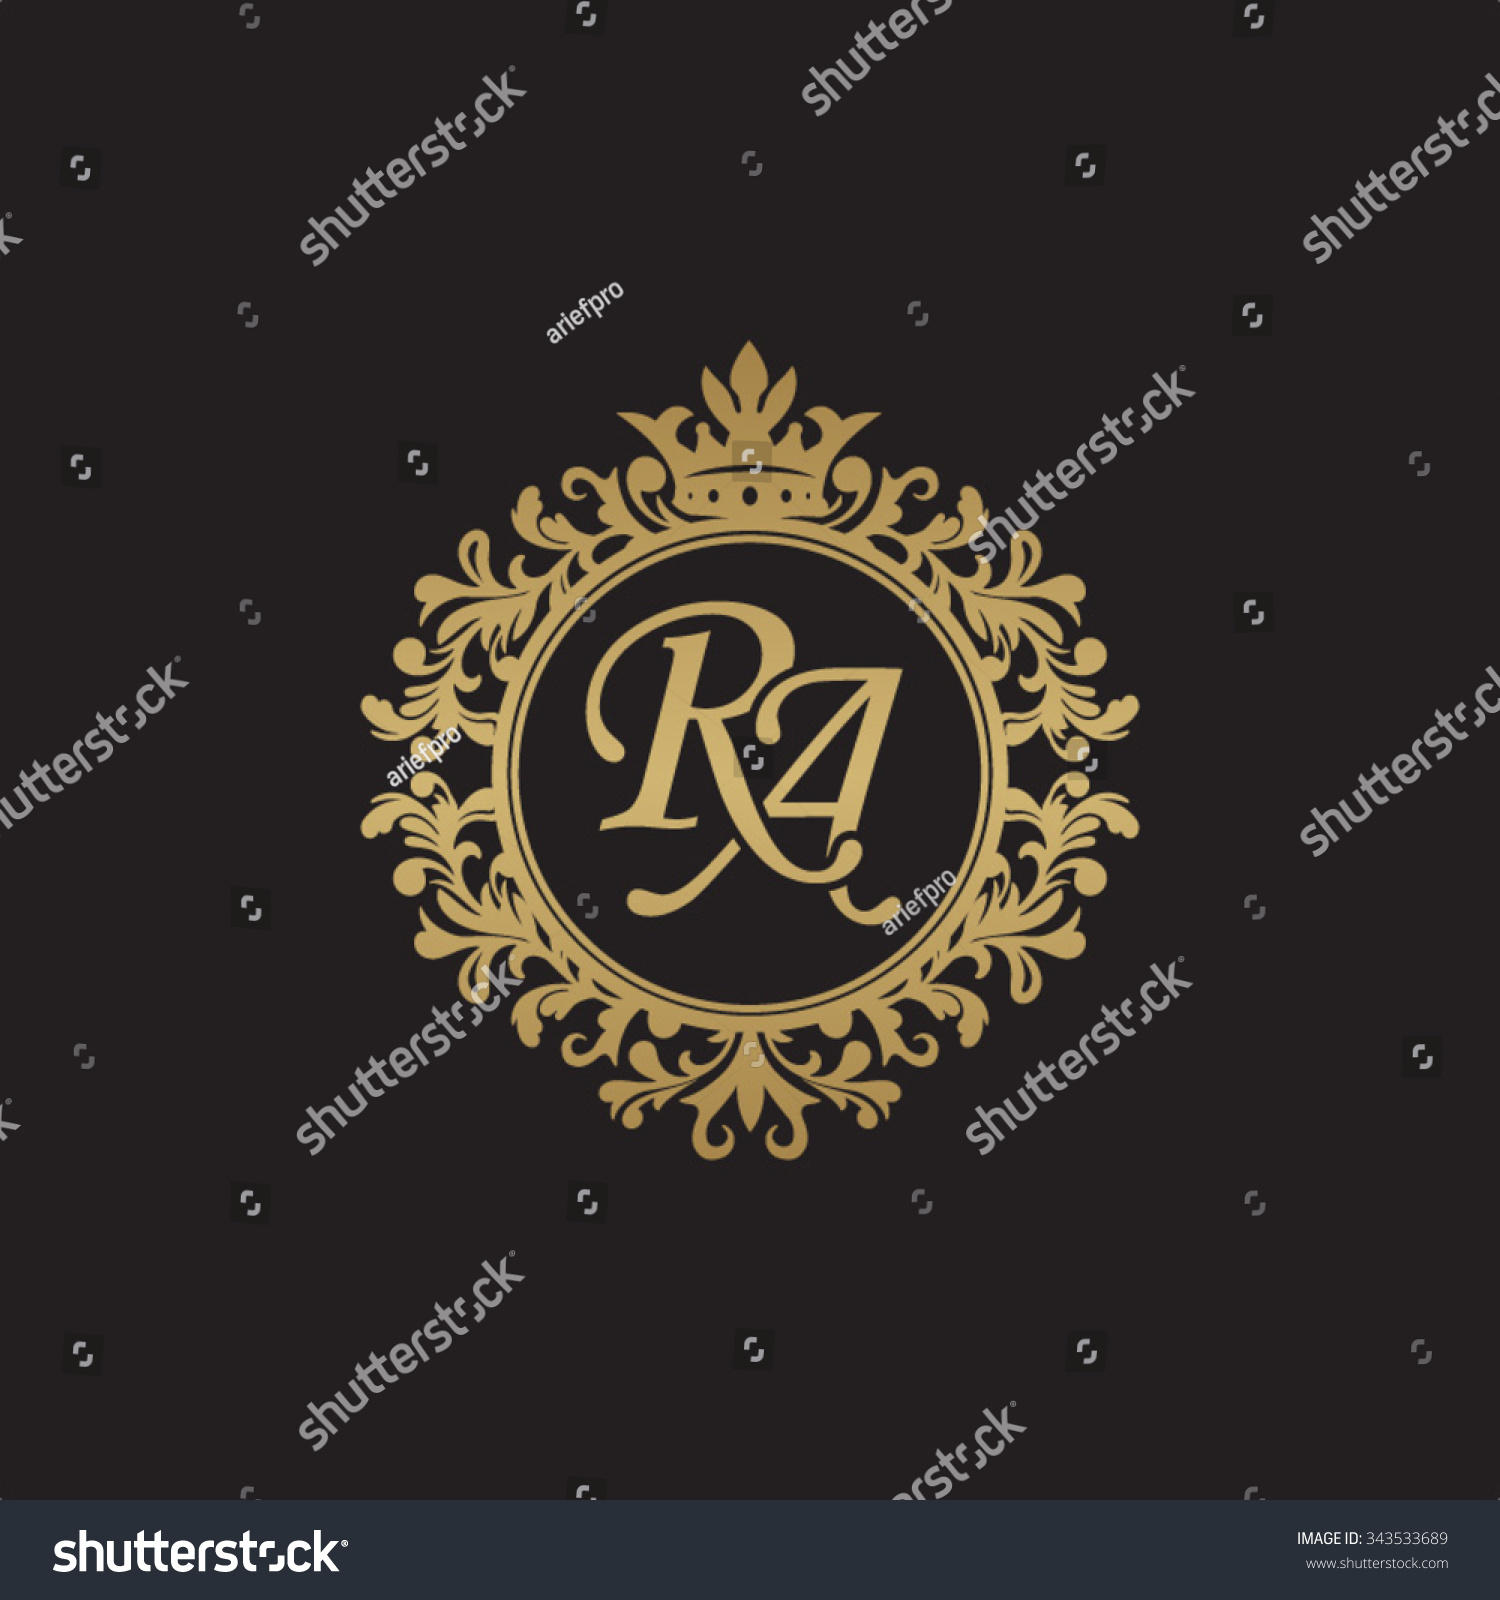 RA Initial Luxury Ornament Monogram Logo Stock-Vektorgrafik ...